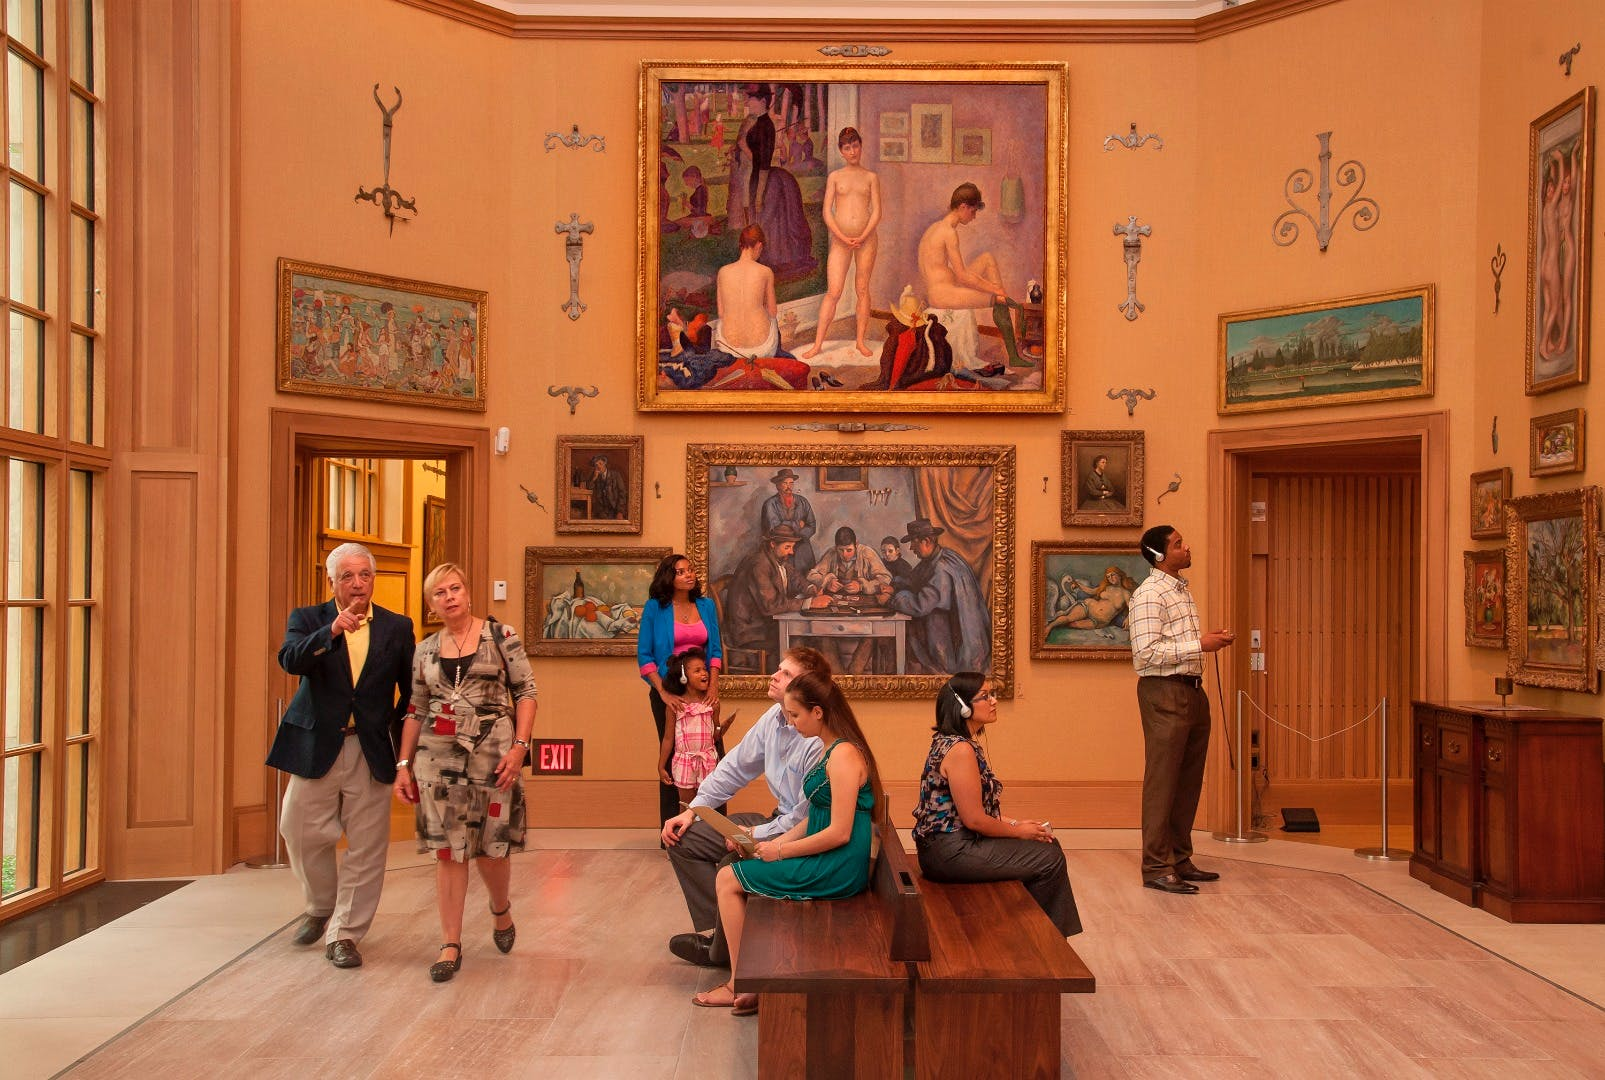 <p><em>The Barnes Foundation will host and be an integral component of the opera &quot;The Wake World&quot; this season as part of Opera Philadephia&#39;s O17. Photo: R. Kennedy for VISIT PHILADELPHIA&reg;</em></p>